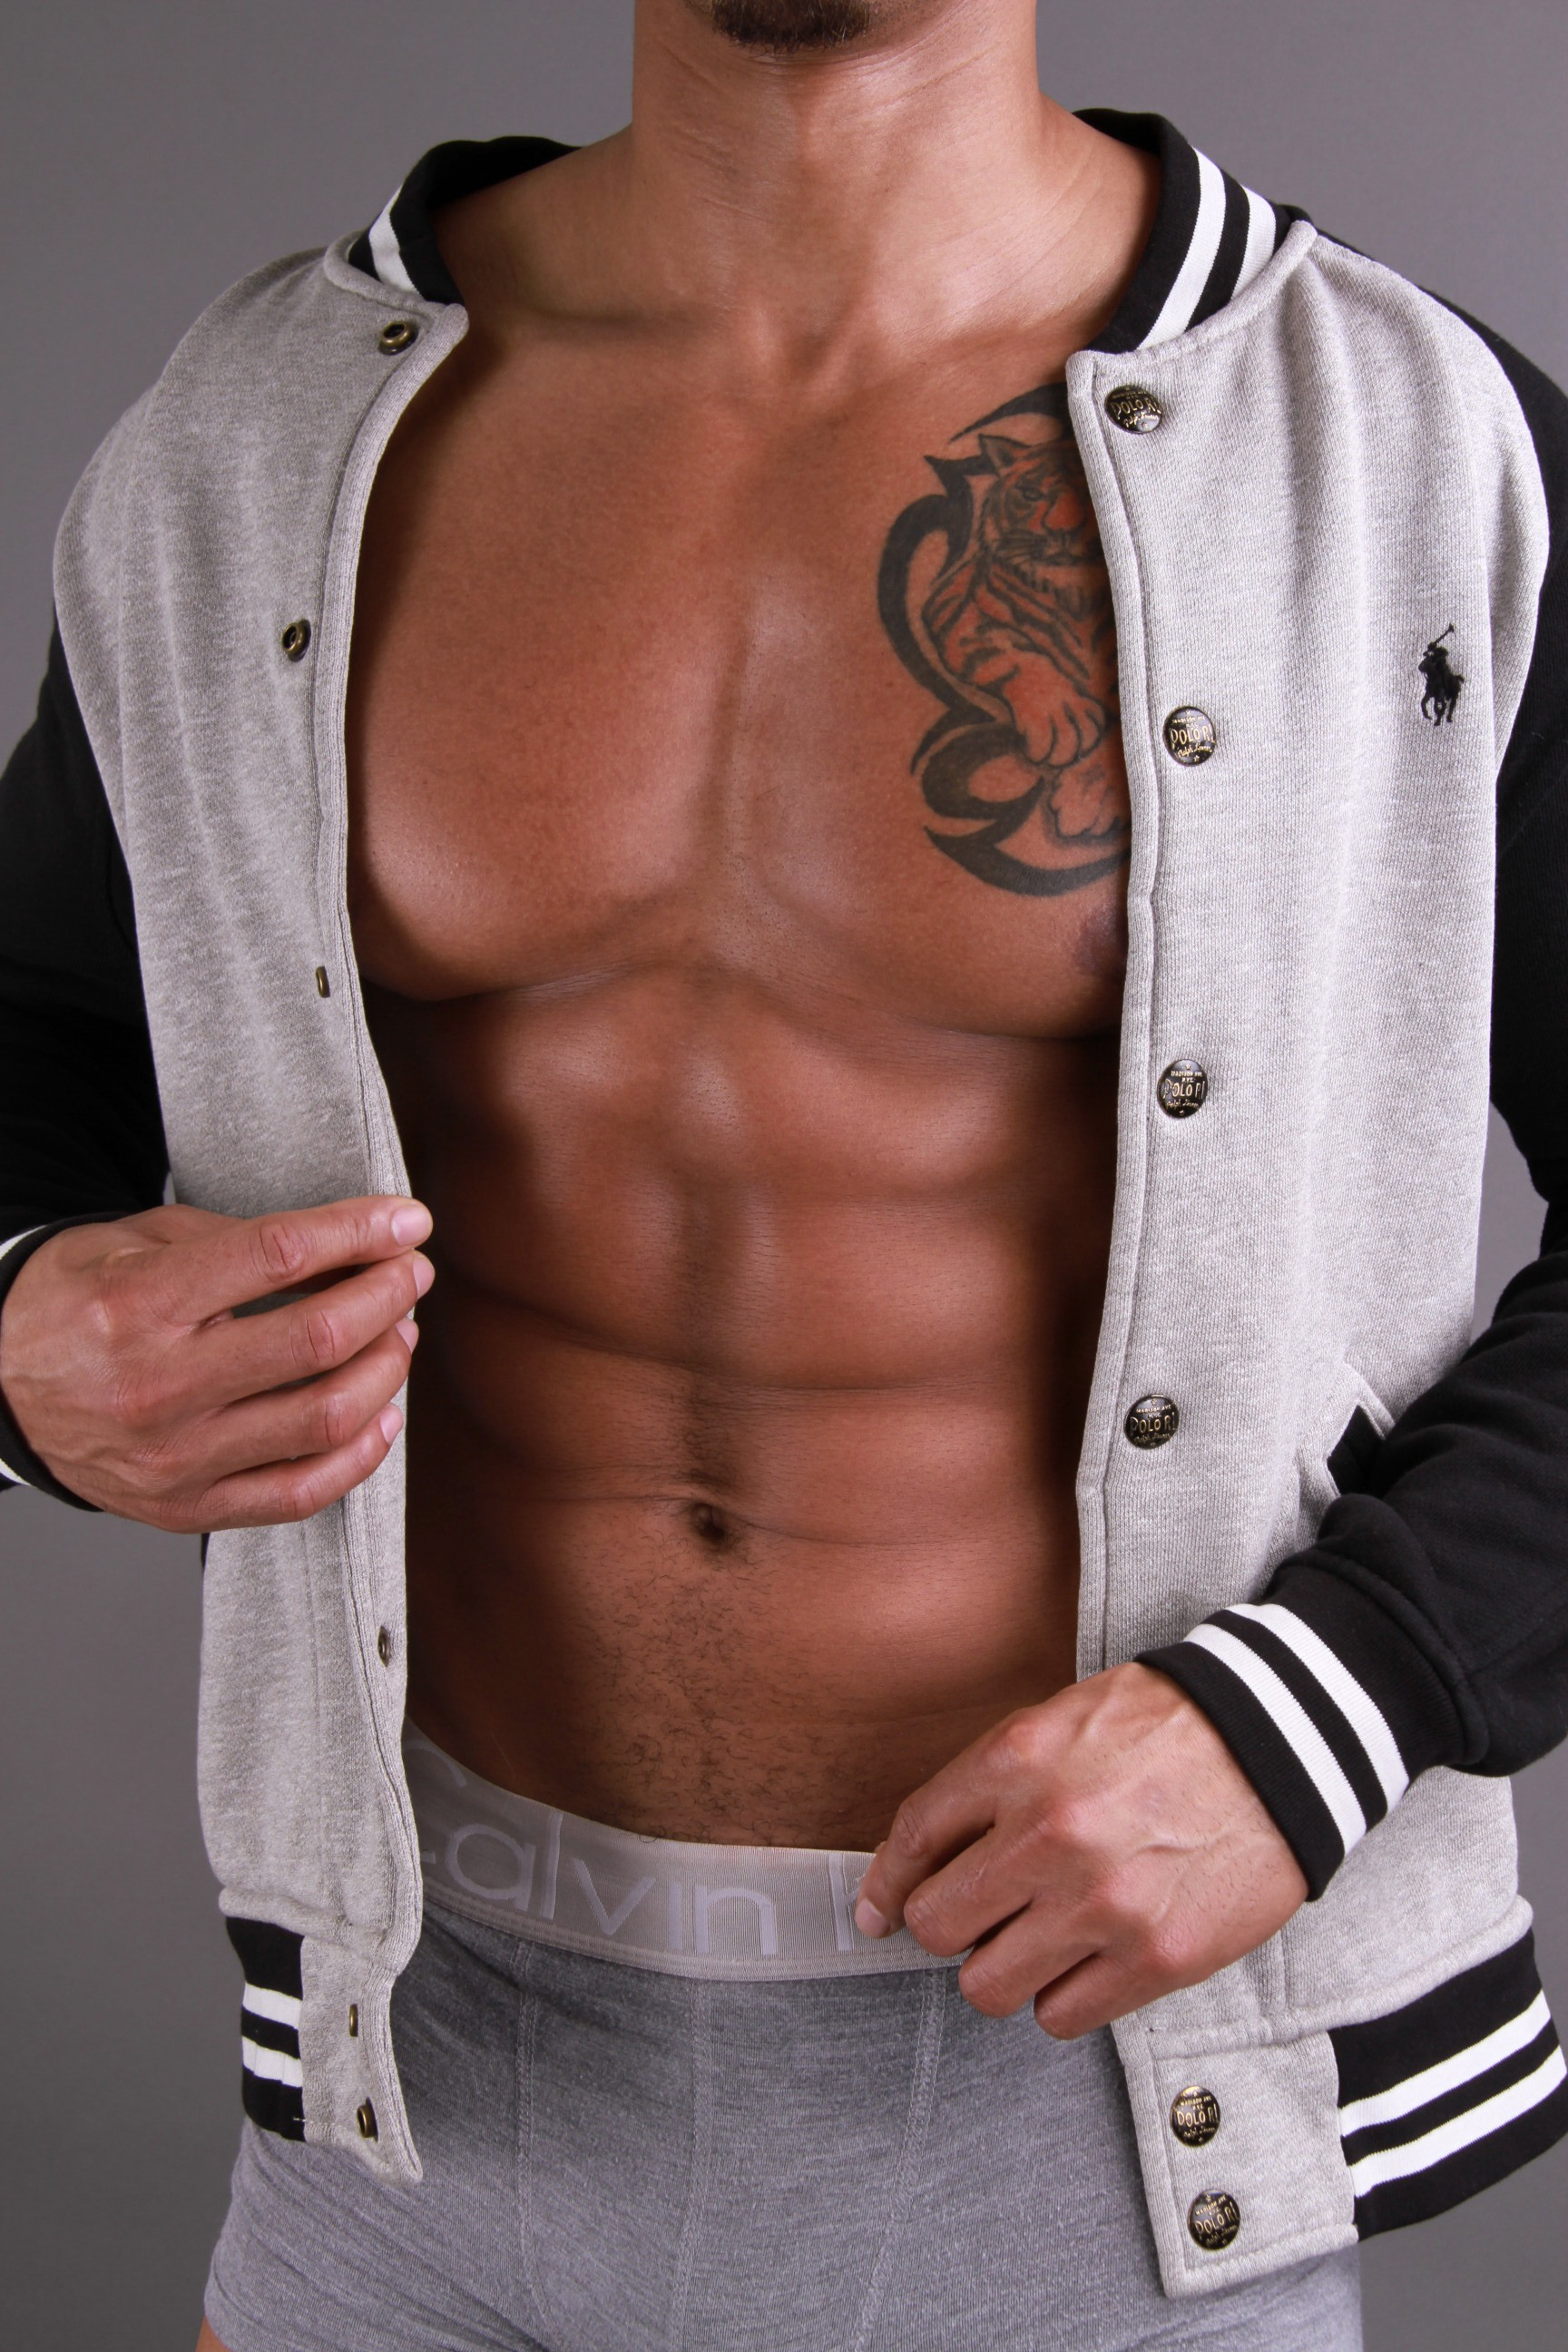 Kalon Jackson_Body Double8